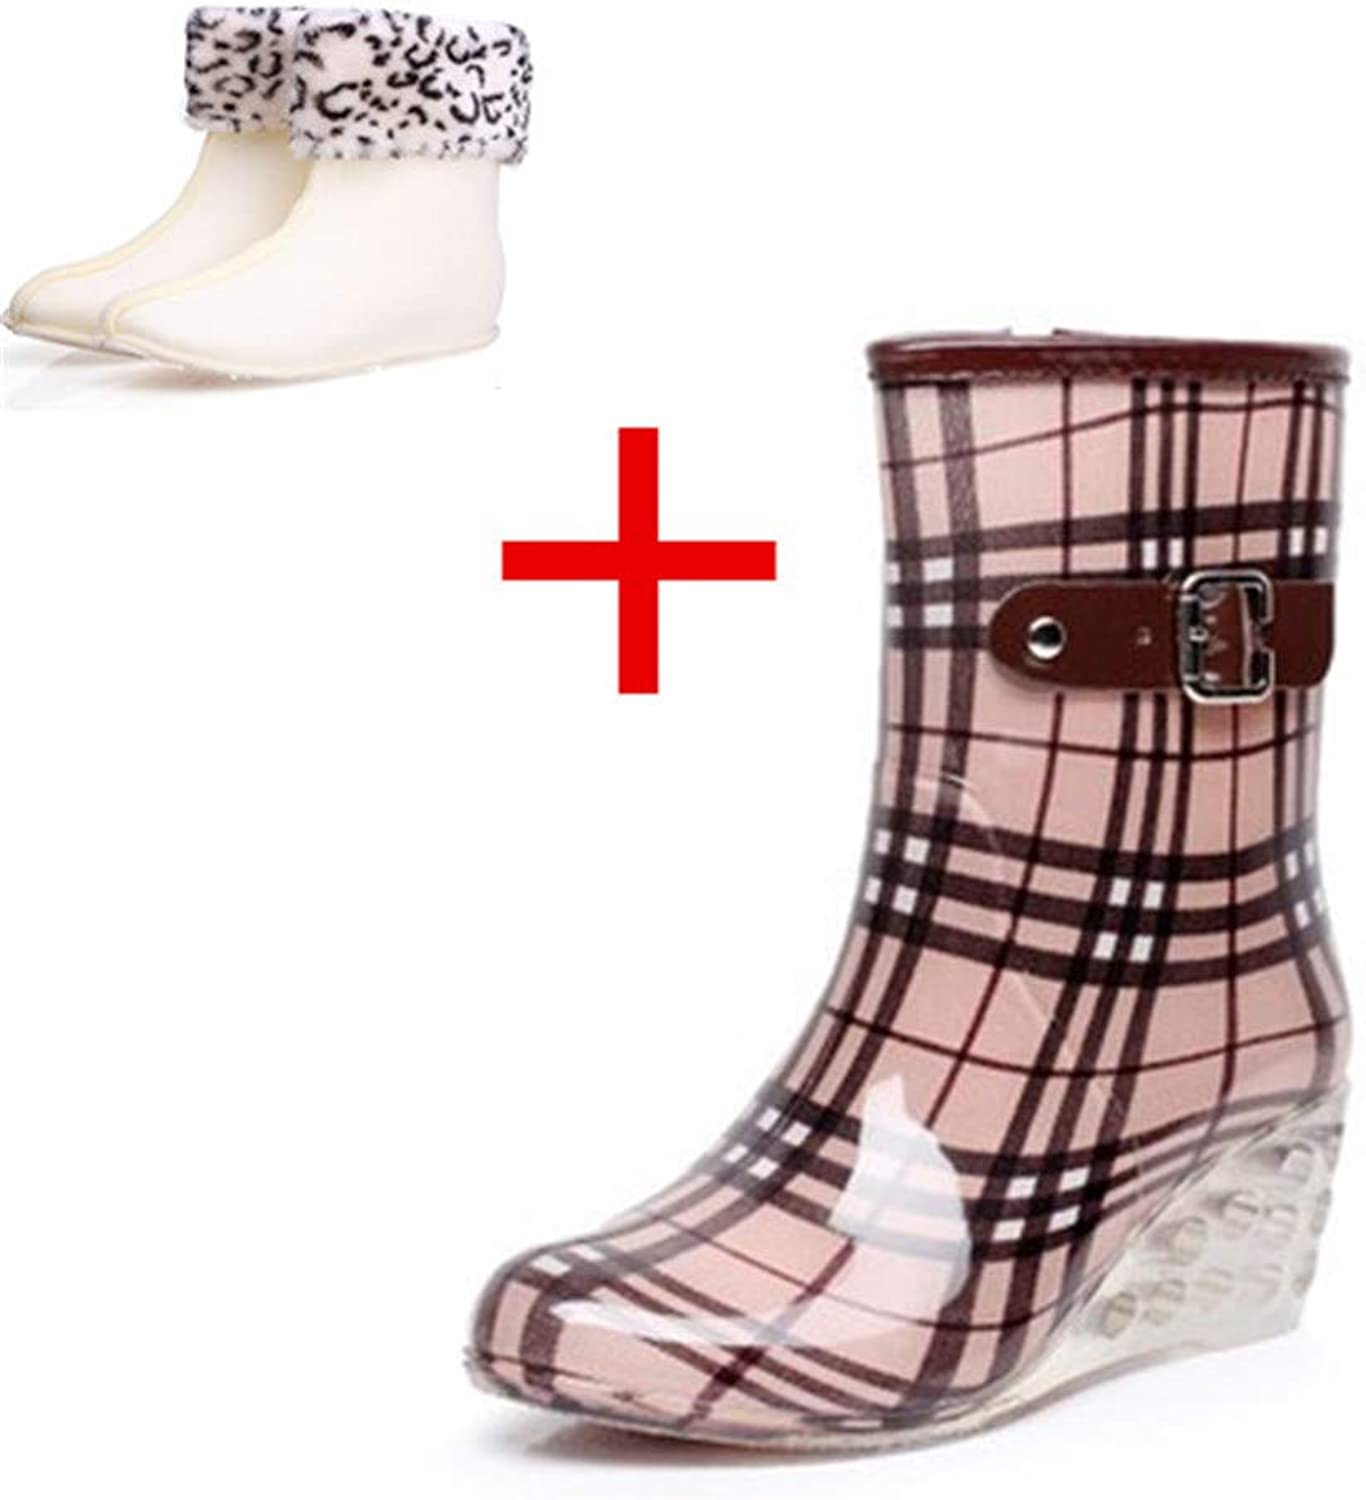 Women's Waterproof Rain and Garden Boot with Comfort Insole Black White Polka Dot